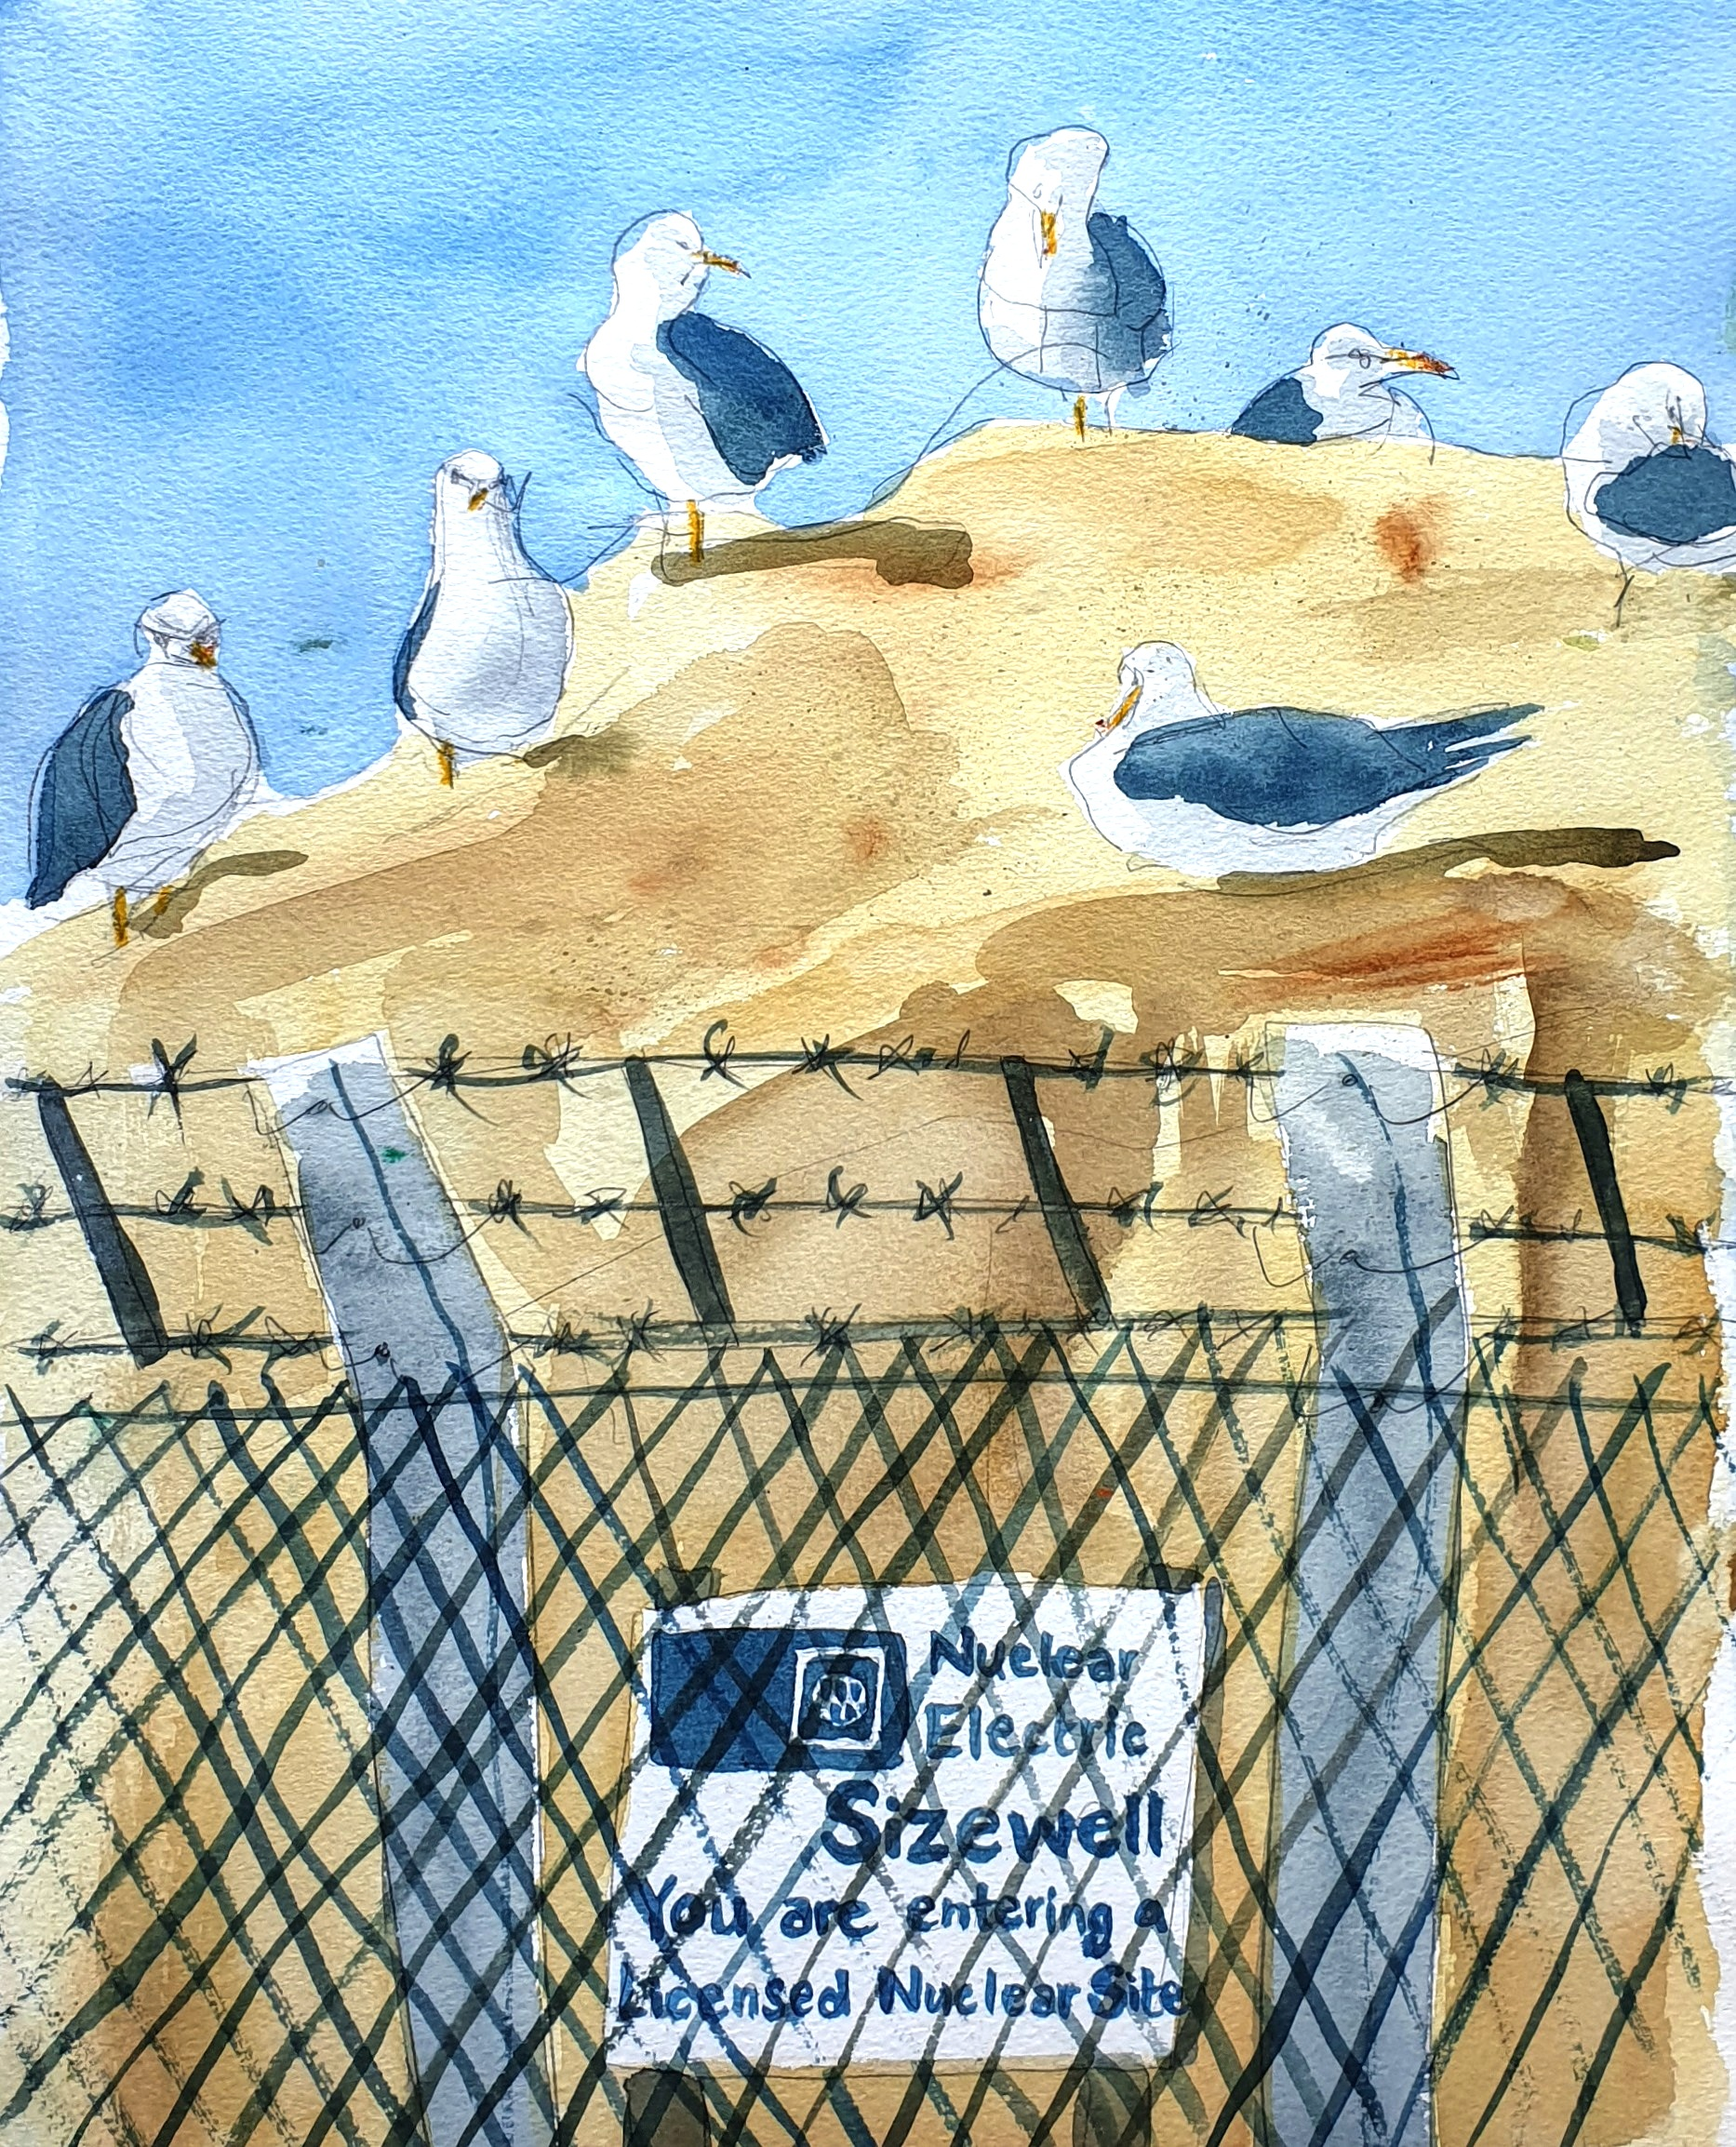 Field sketch: Lesser black-backed gulls, Sizewell Nuclear Power Station, Suffolk . Illustration © 1991 by Tim Warnes